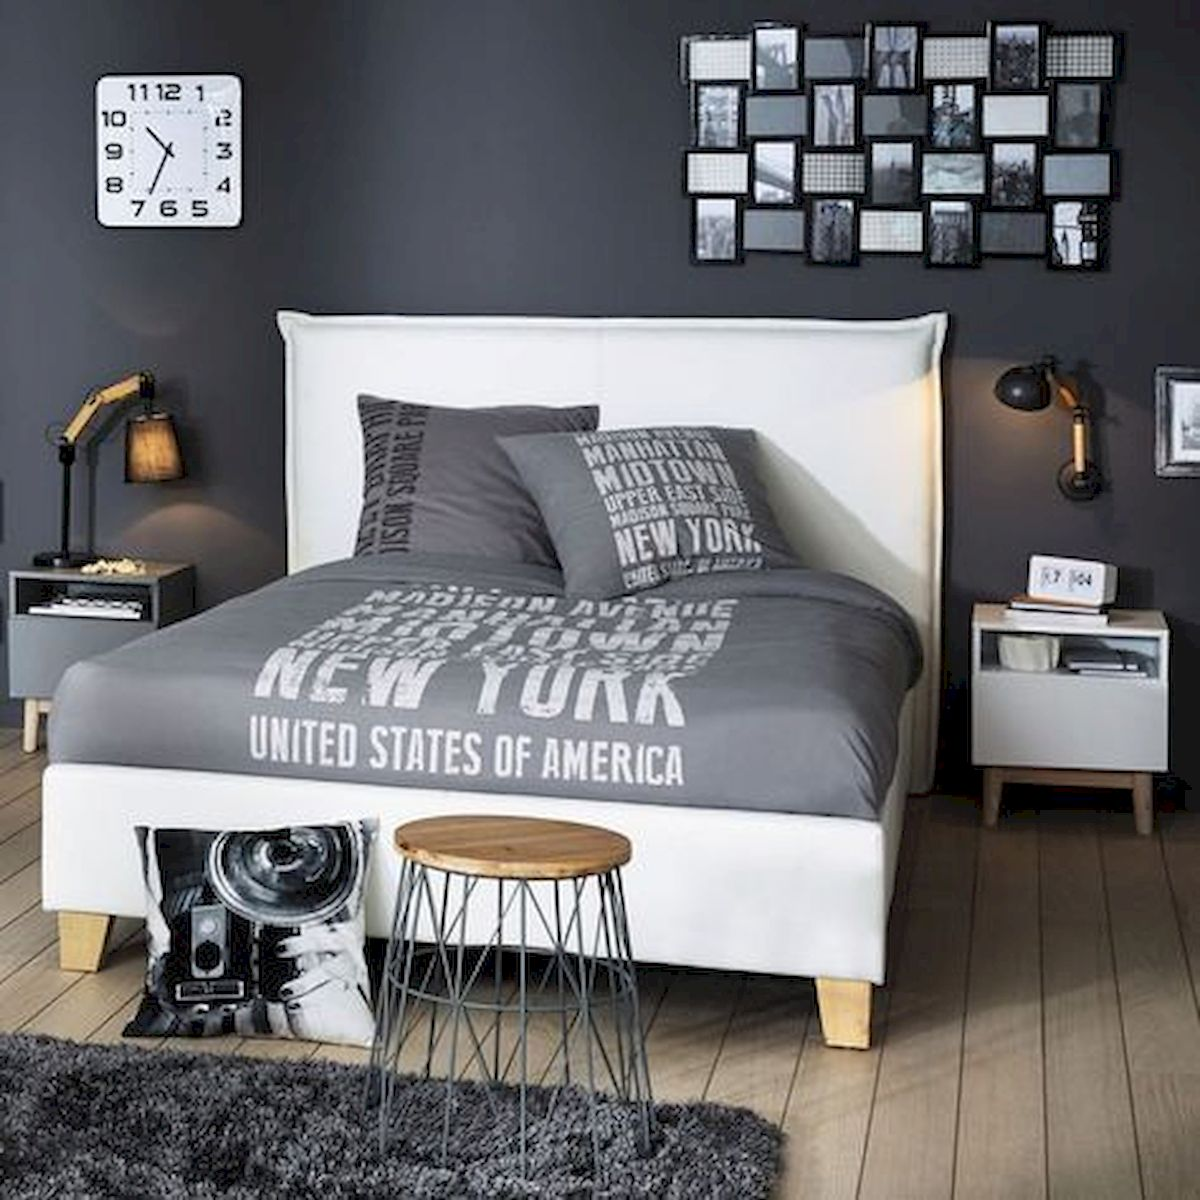 45 Cool Boys Bedroom Ideas to Try at Home (28)